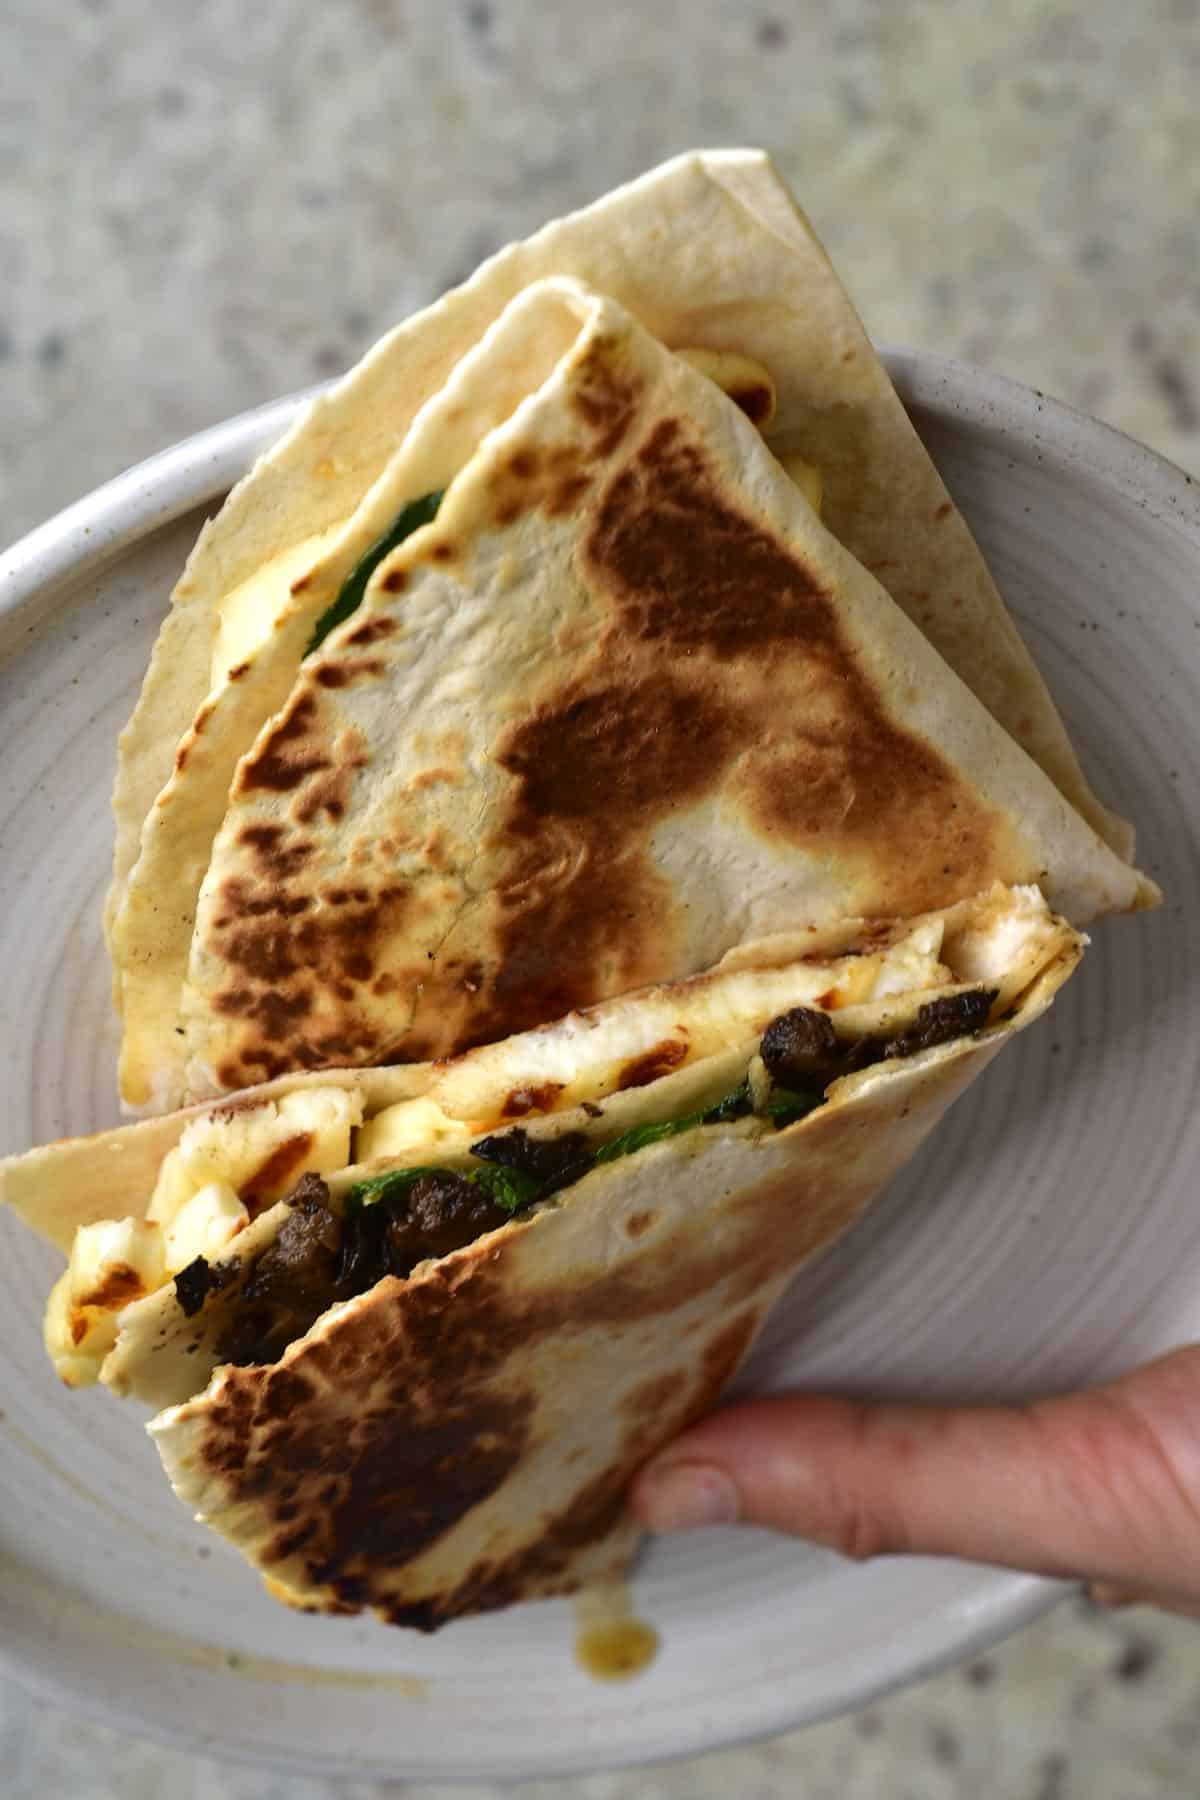 Folded toasted tortilla with halloumi